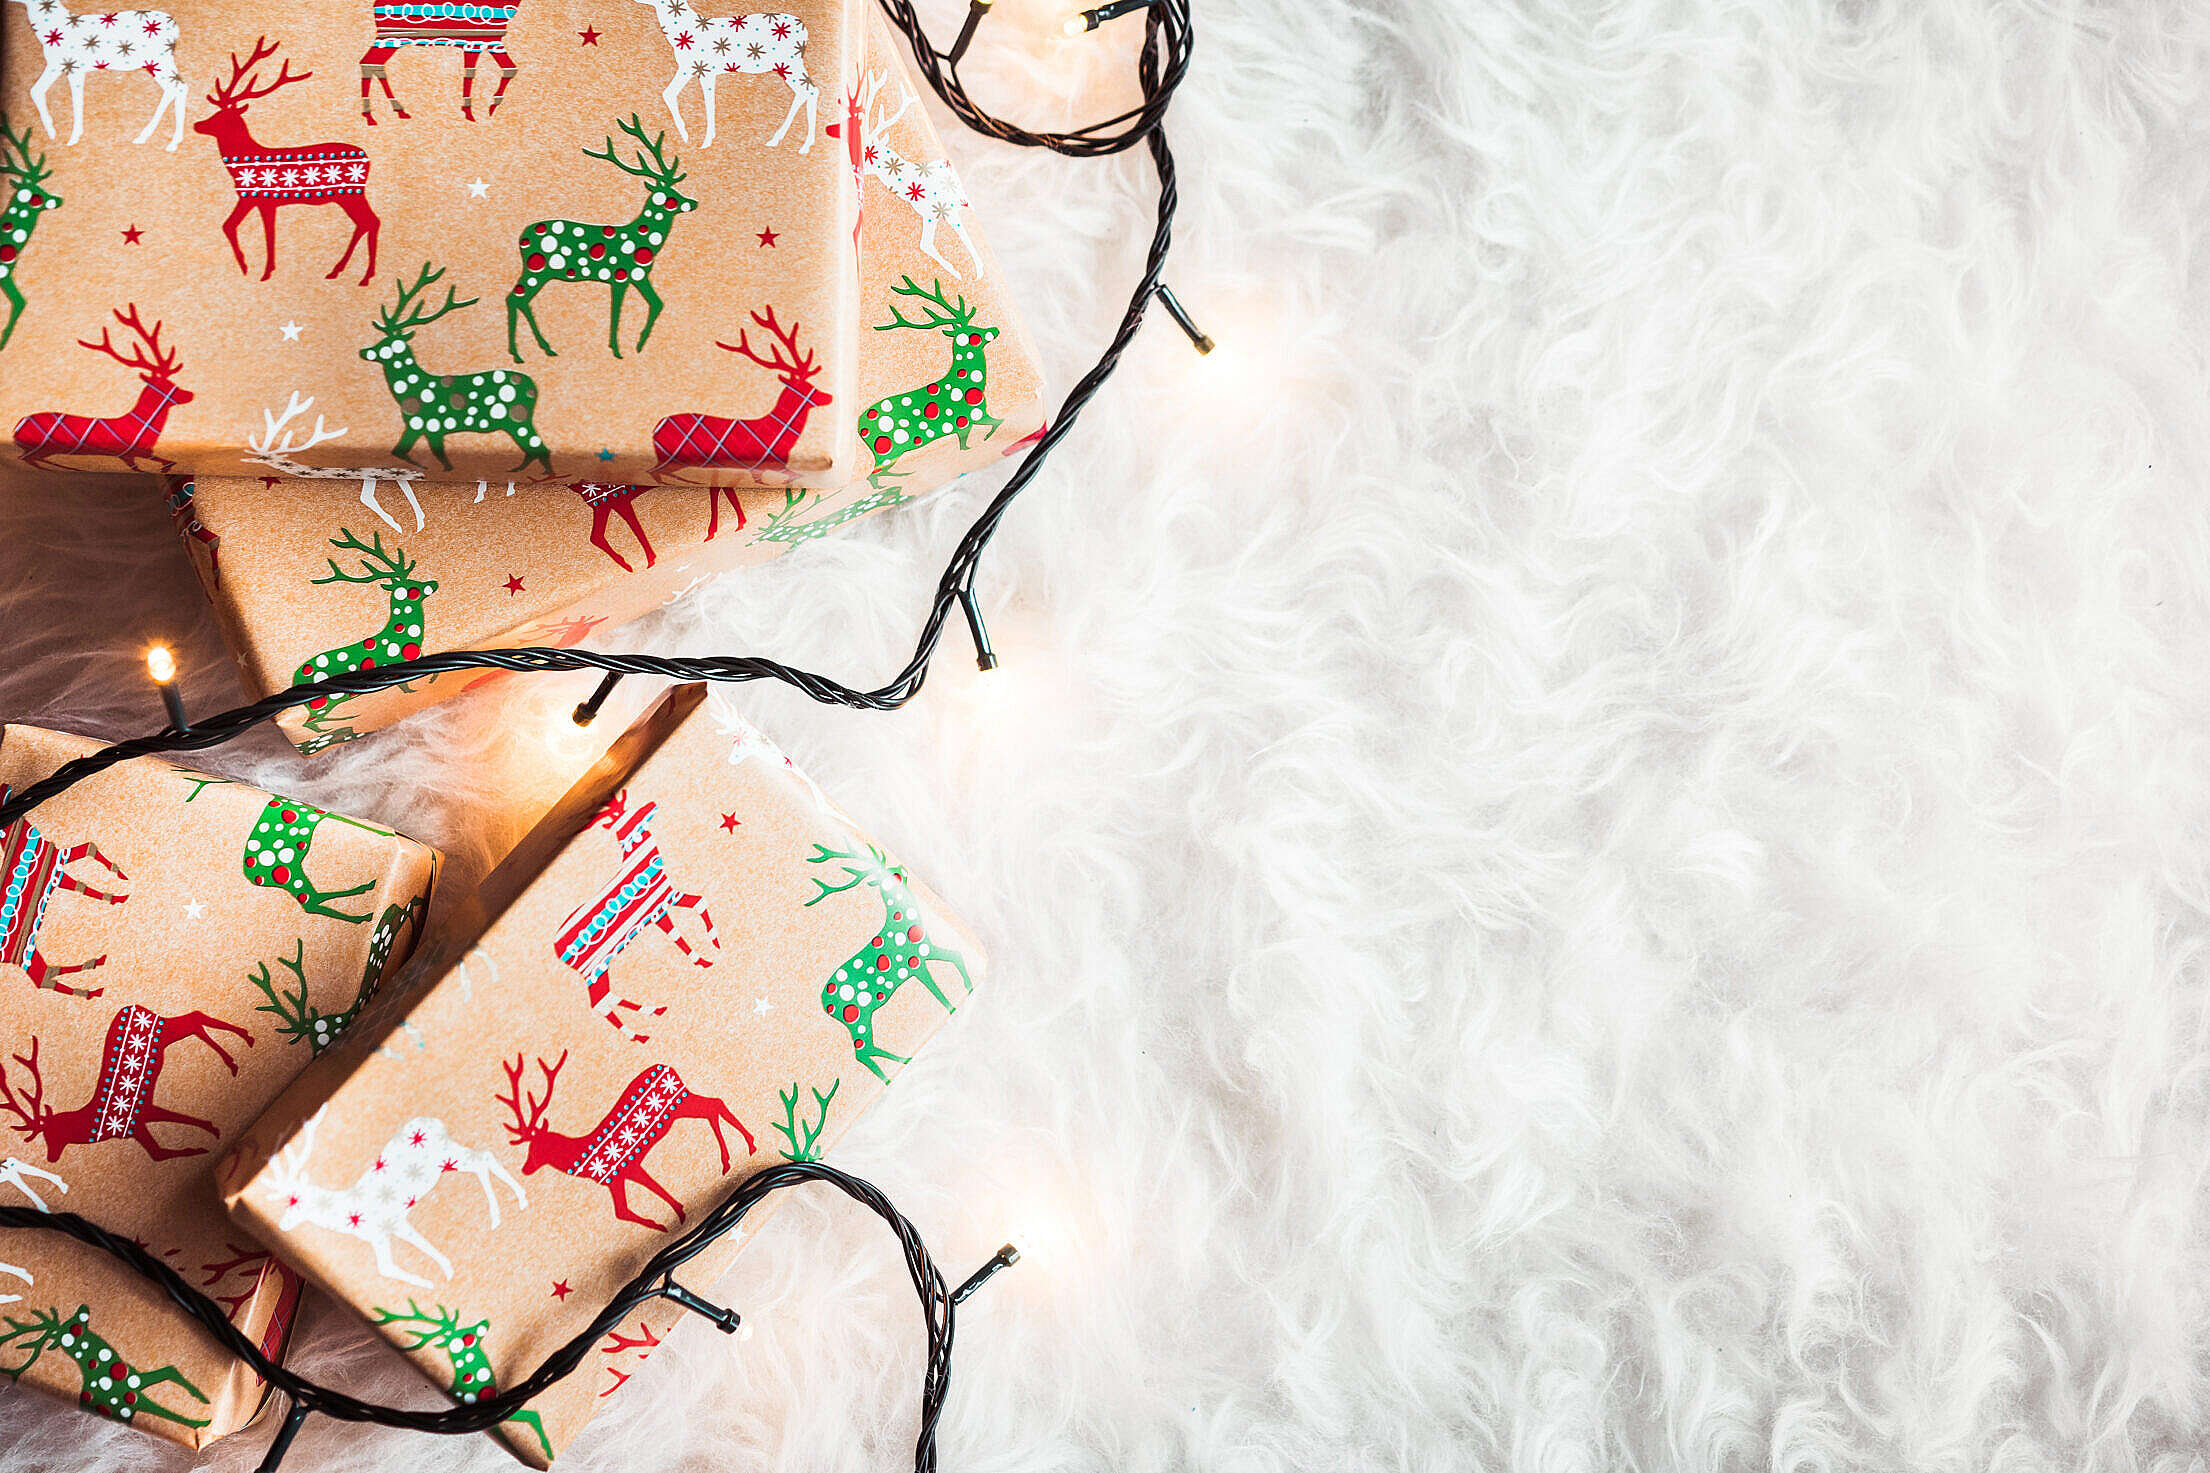 Christmas Gifts Still Life with Room For Text Free Stock Photo